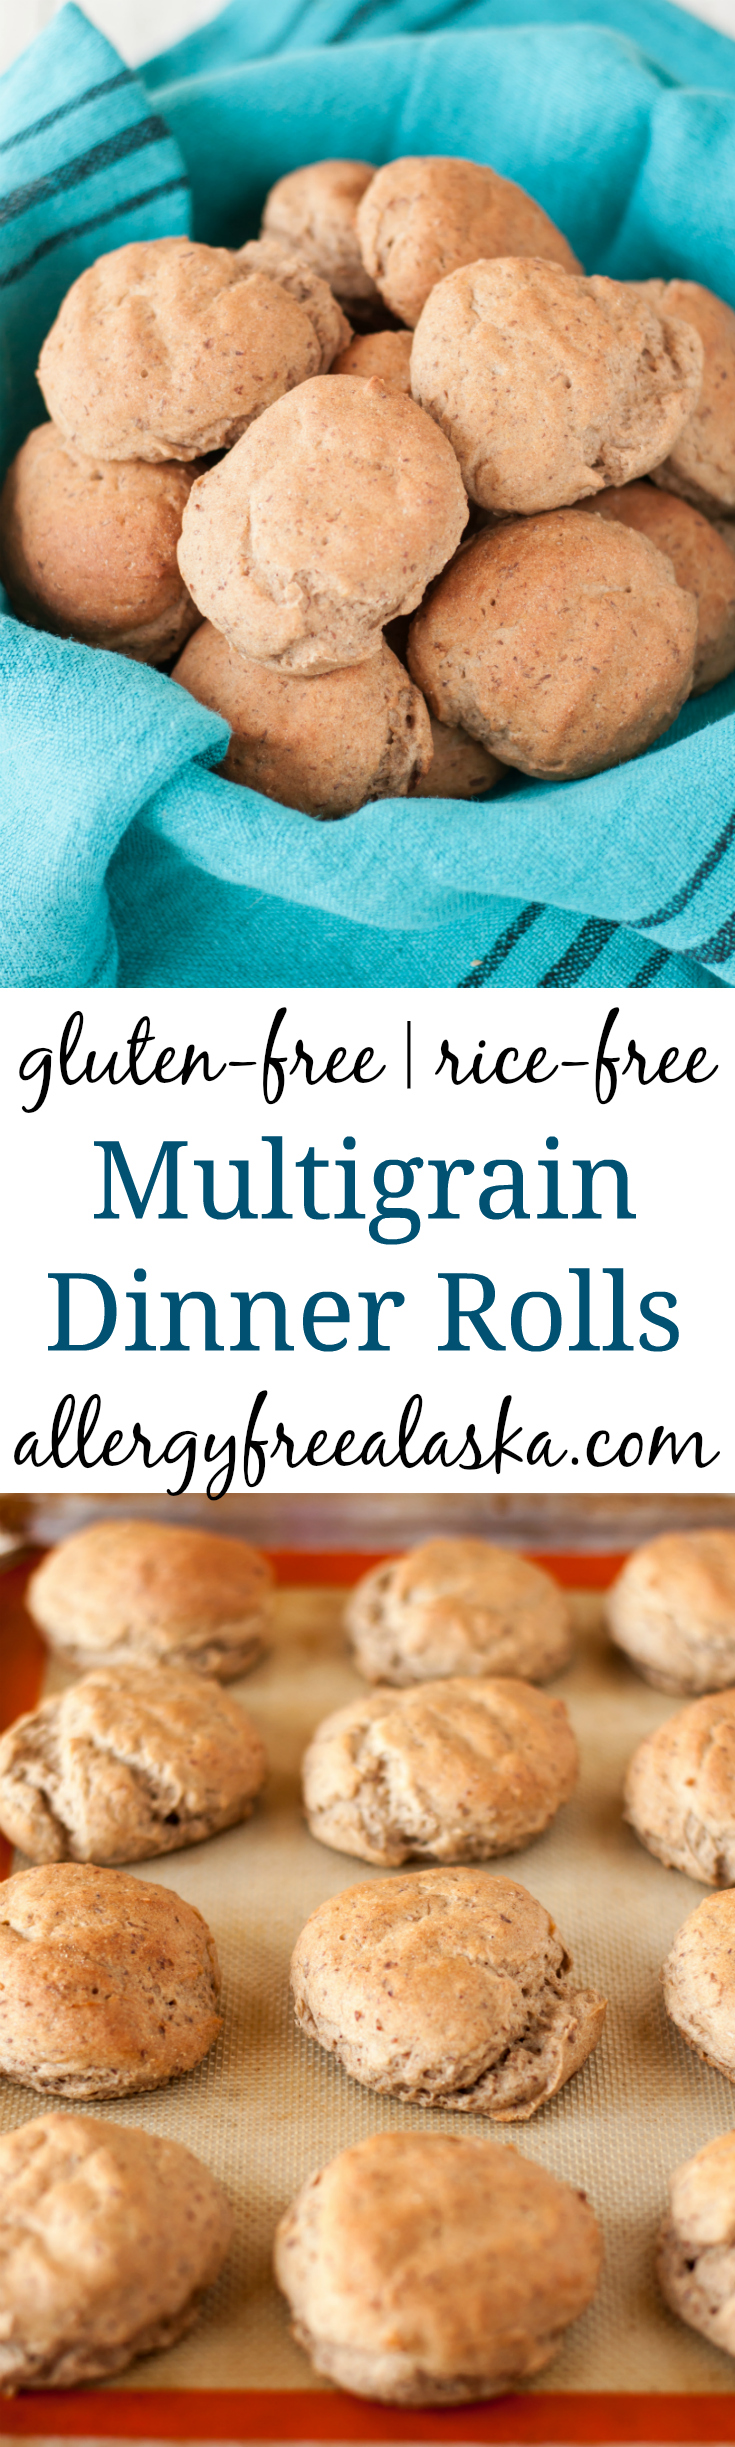 gluten-free-rice-free-dinner-rolls-recipe-afa-blog